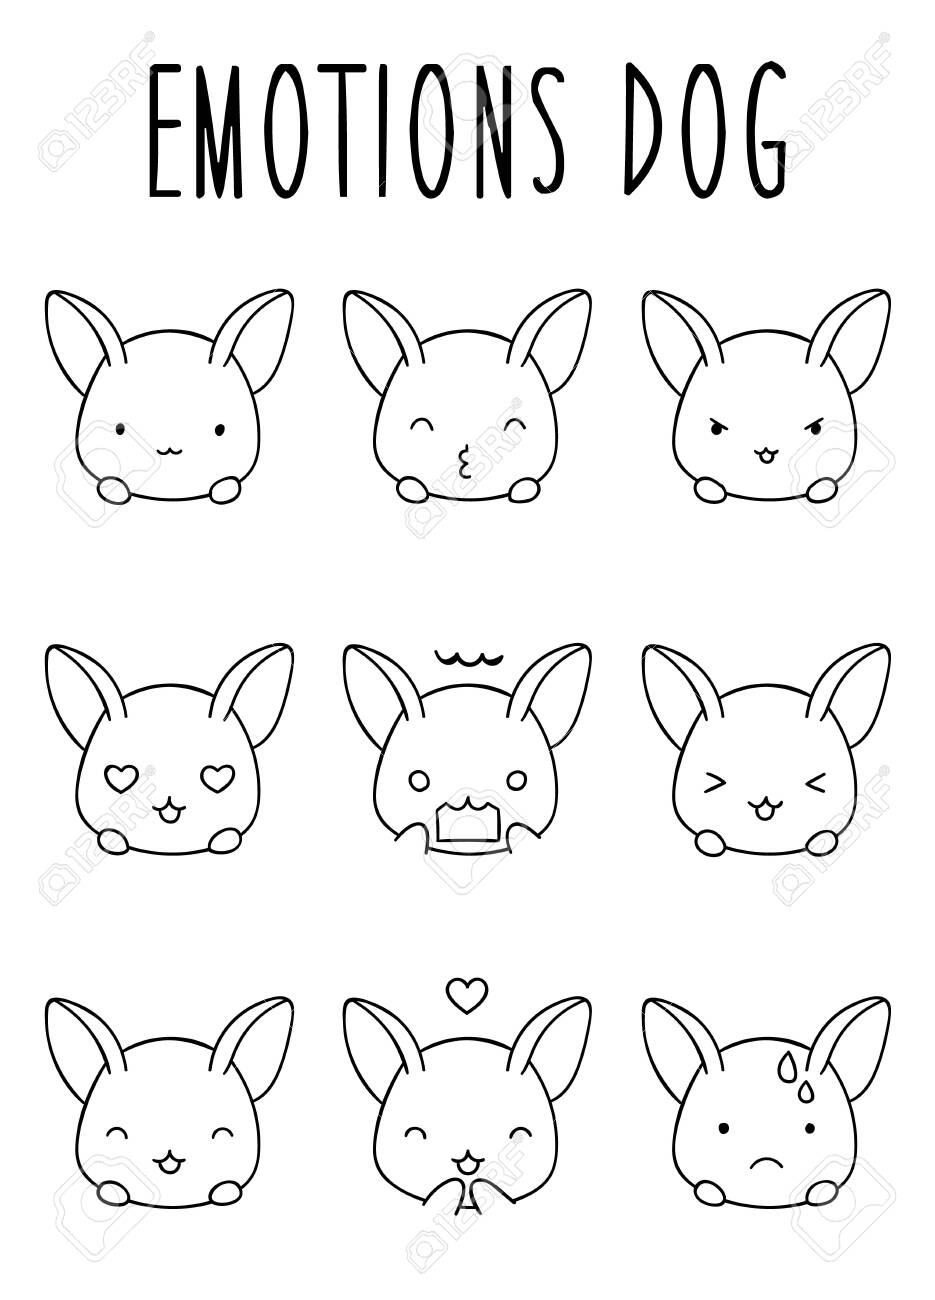 Emotions and feelings coloring pages | Teach feelings ... | 1300x935